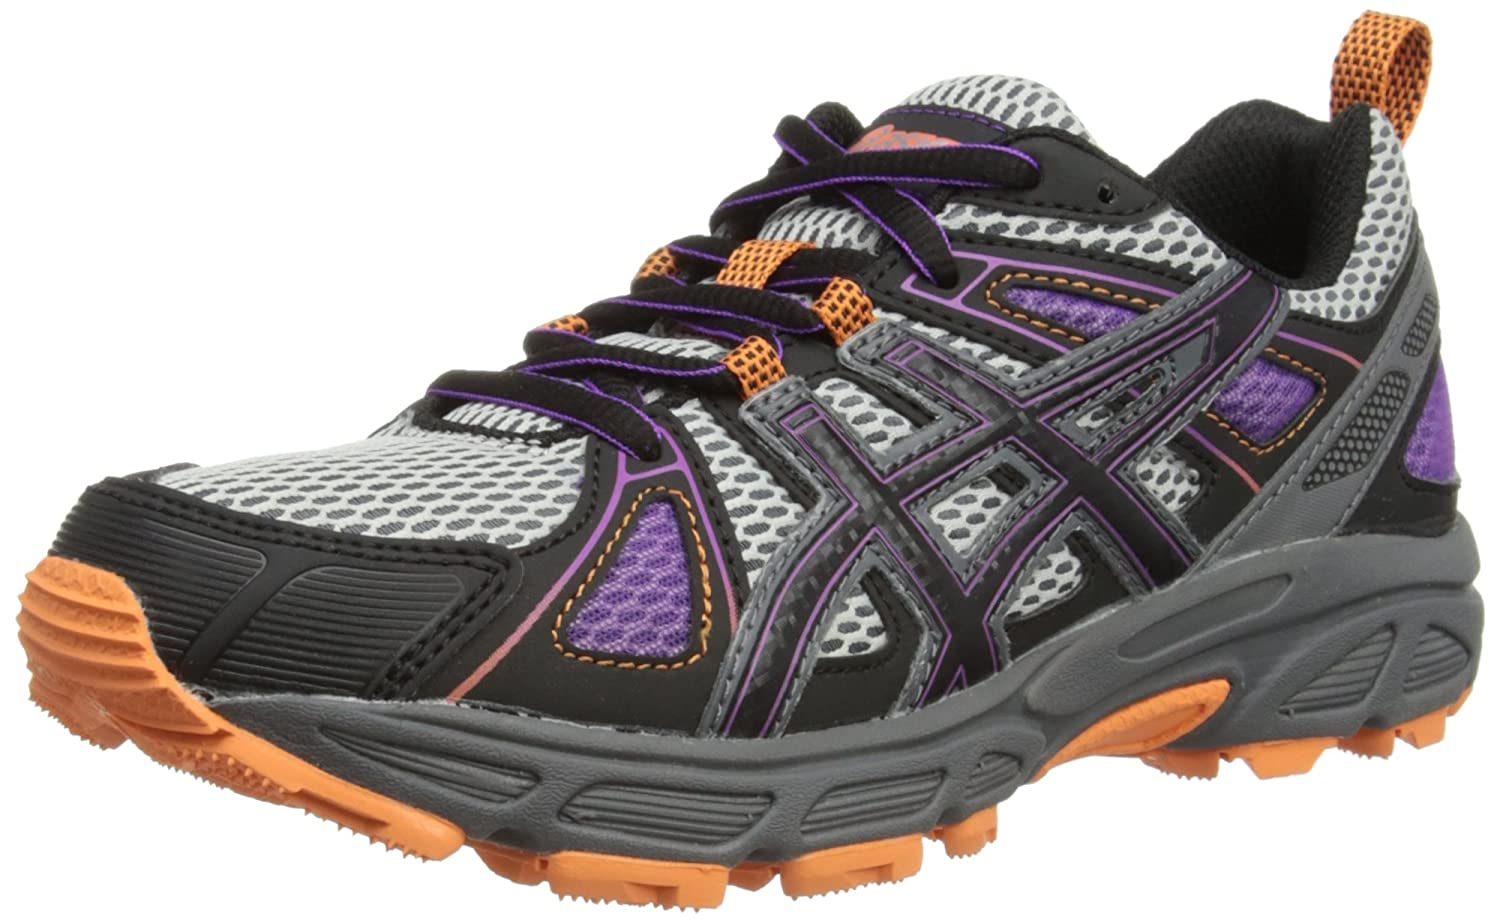 ASICS GEL TRAIL-TAMBORA 4 Women's Running Shoes, Silver, 9 UK:  Amazon.co.uk: Shoes & Bags